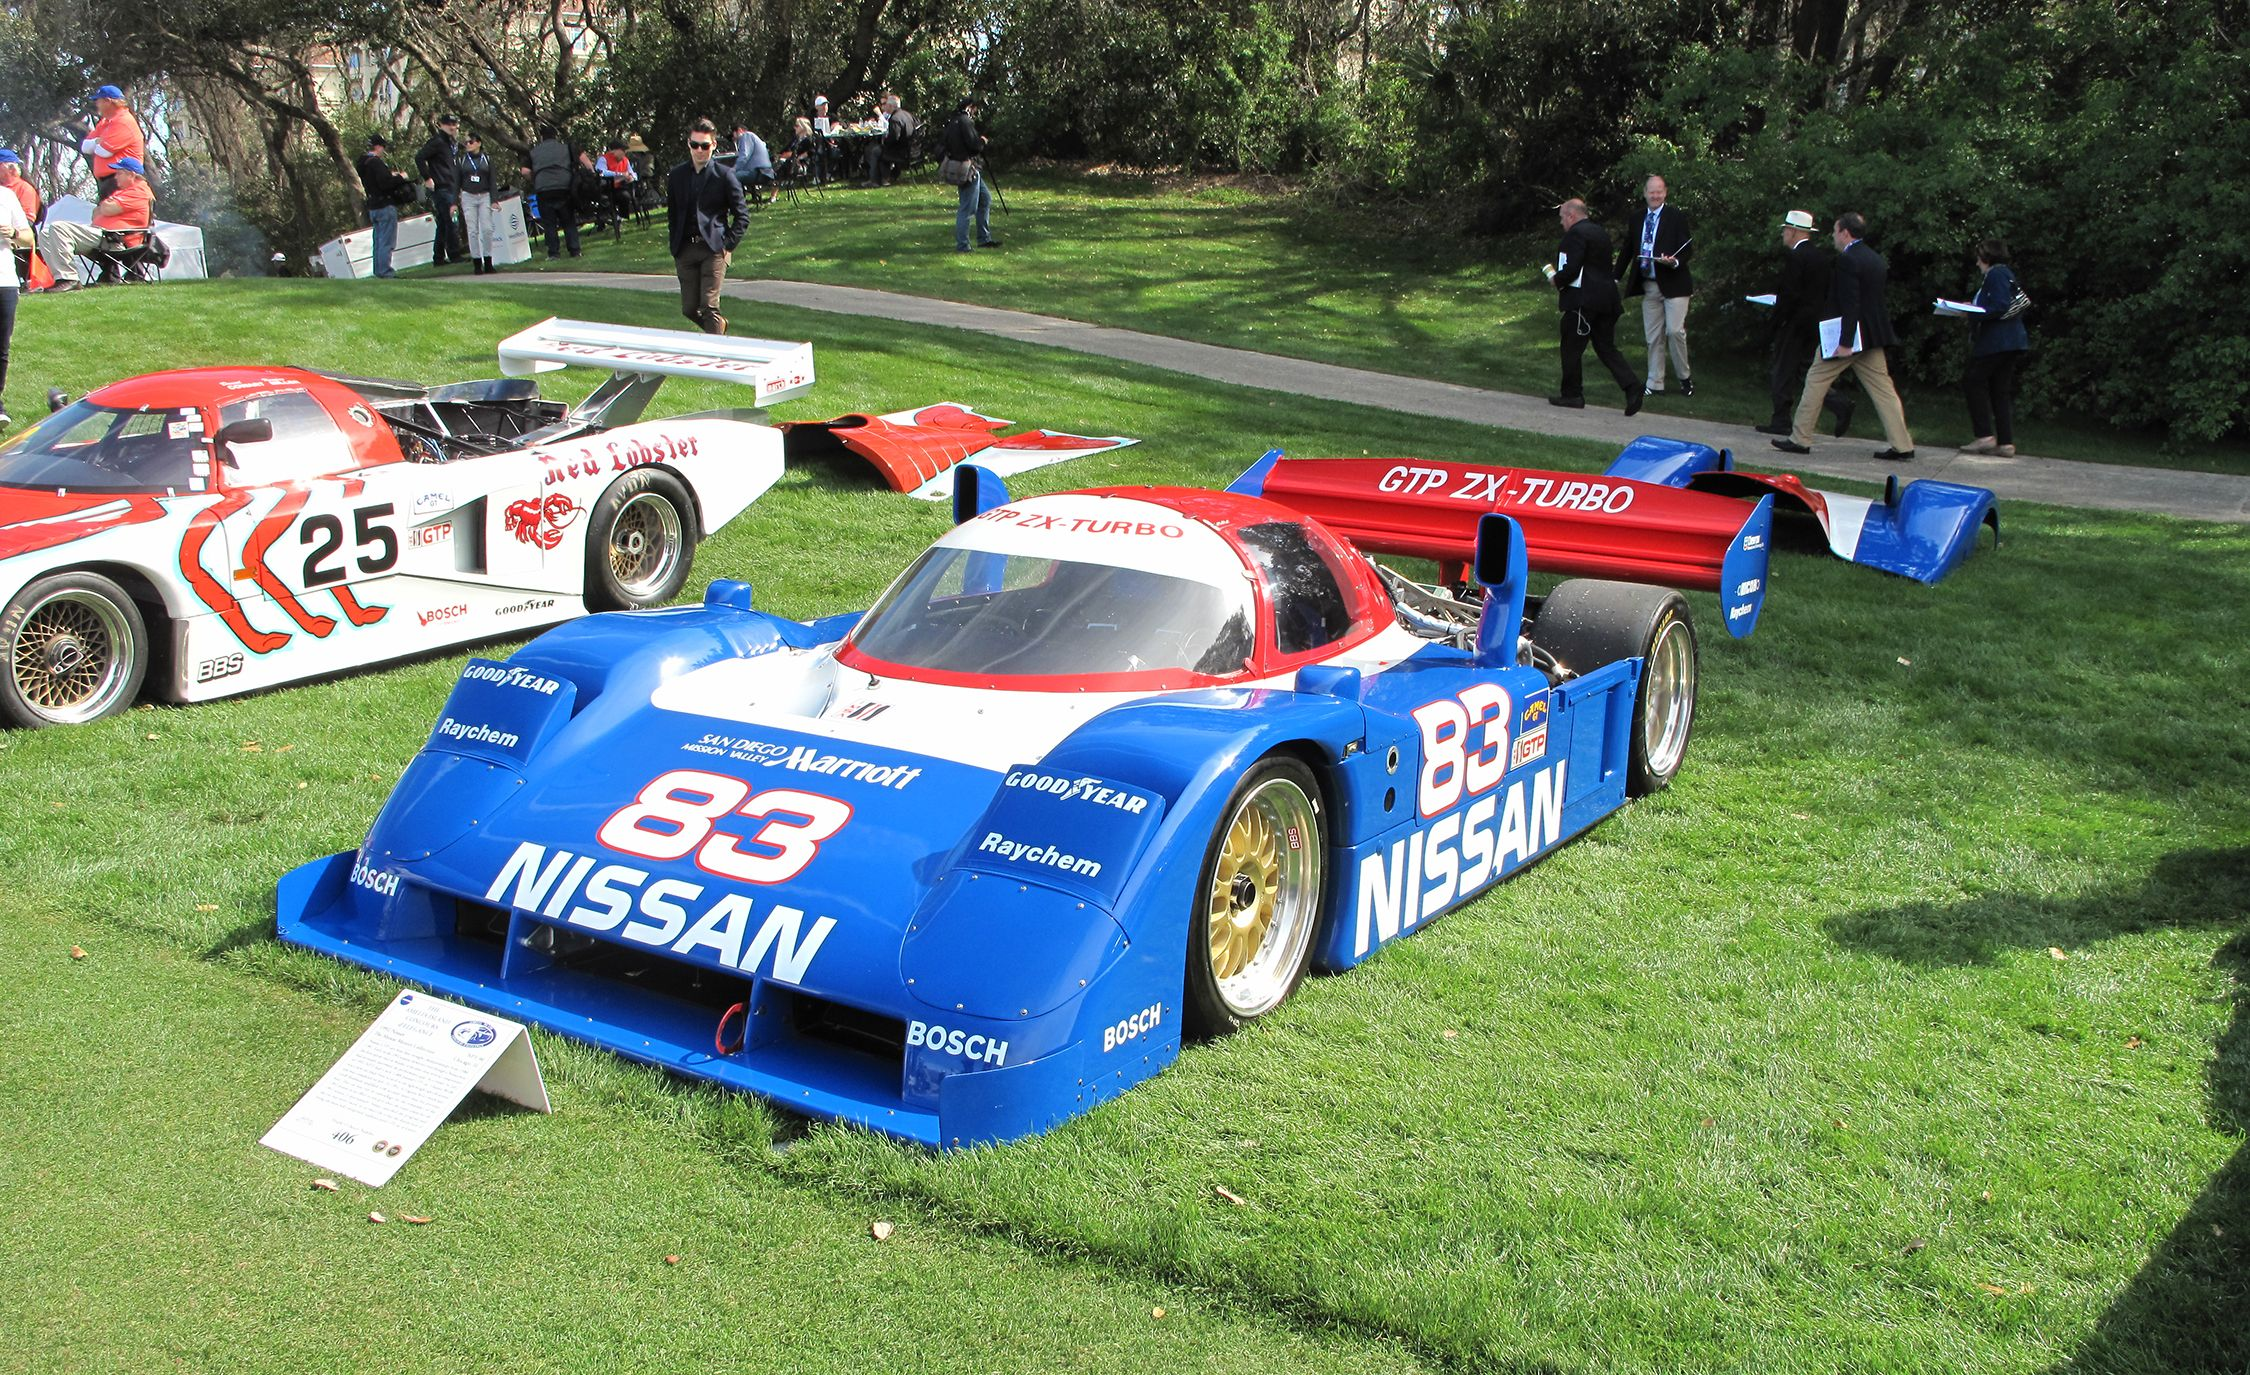 12 Of Imsa S Legendary Gtp Race Cars Gather At The 2018 Amelia Island Concours